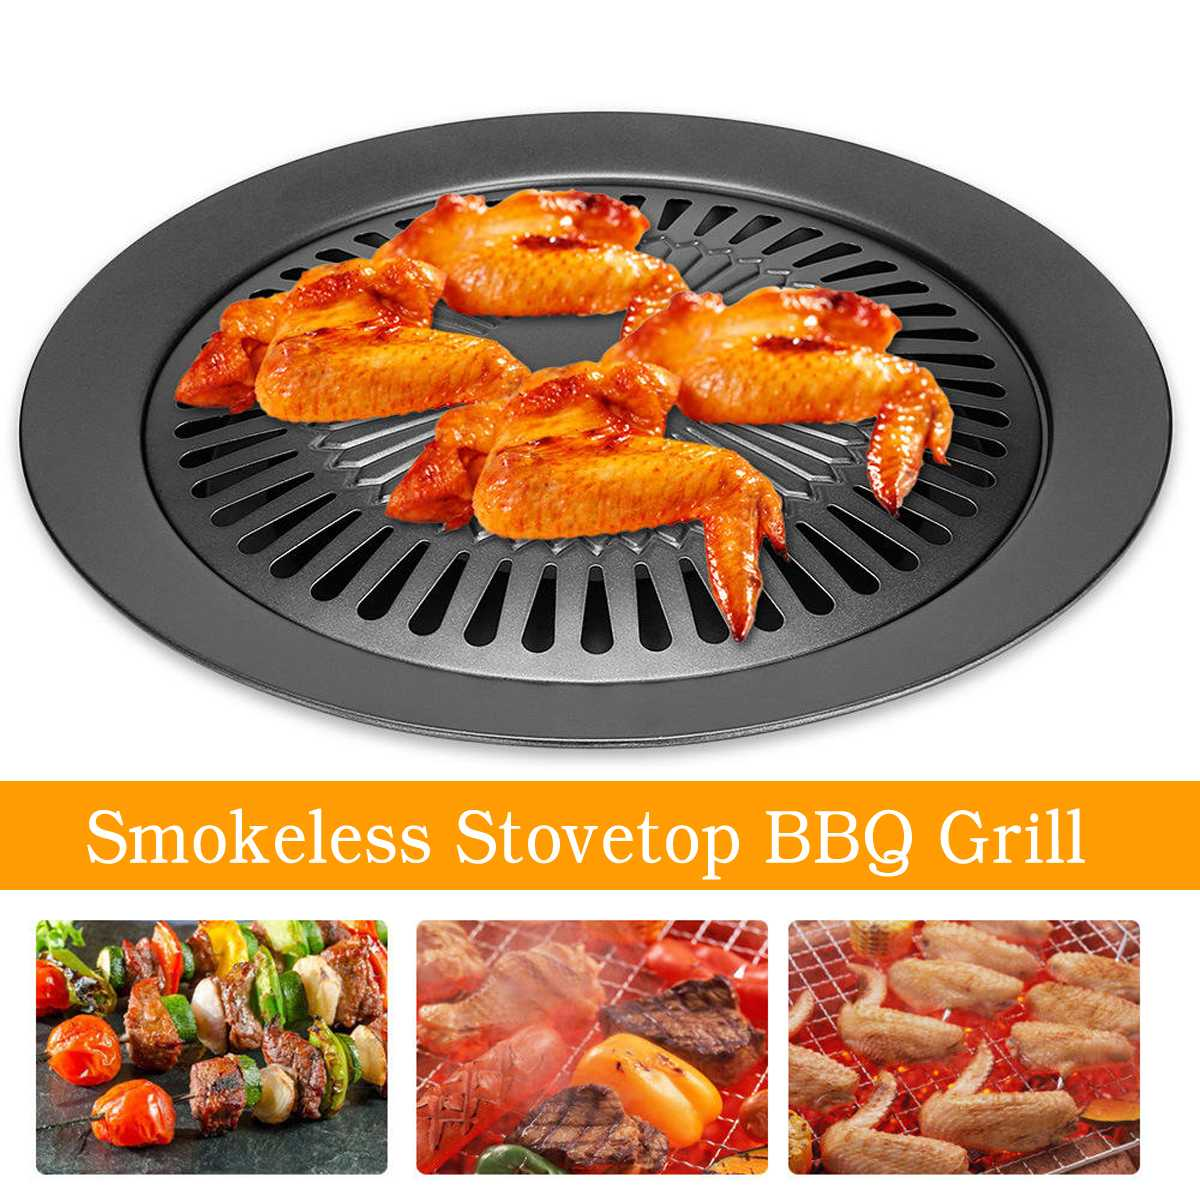 Smokeless Indoor Stovetop BBQ Grill Barbeque Kitchen Barbecue Pan Griddle Black